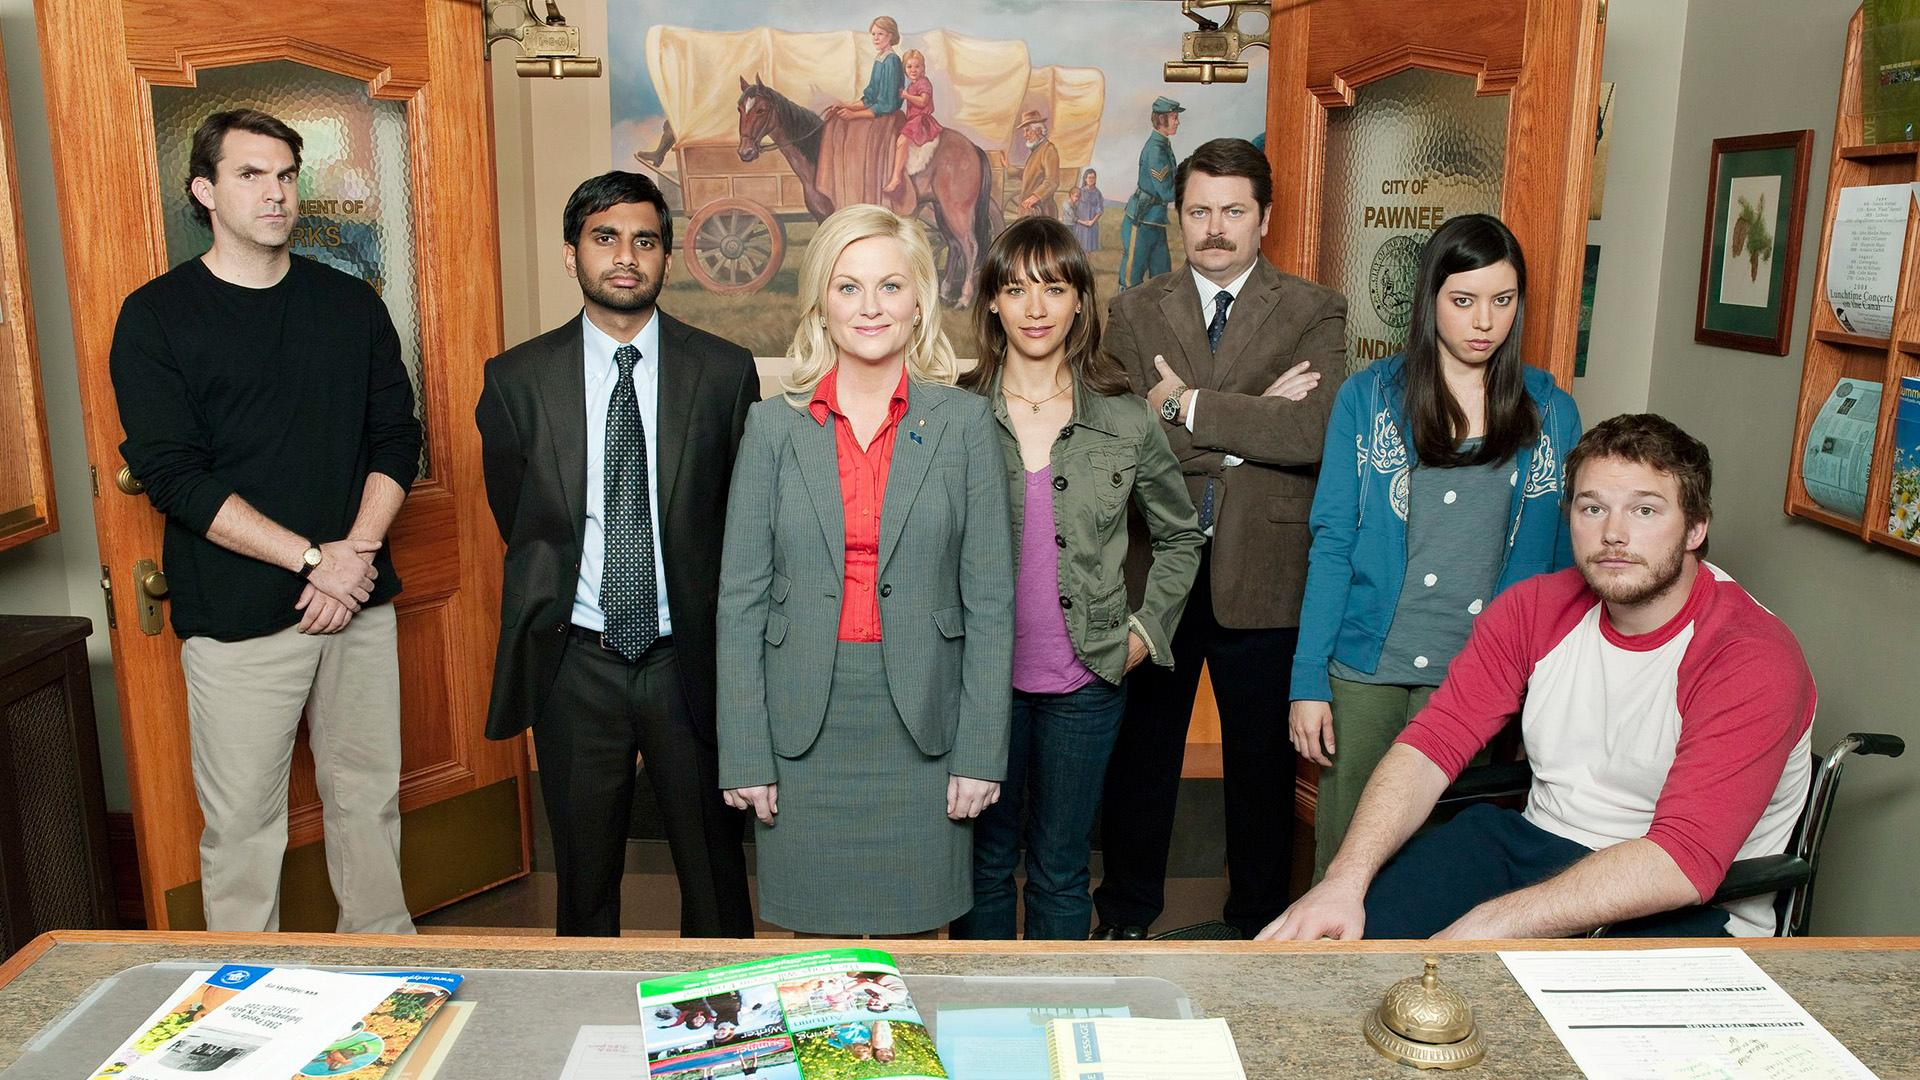 Parks And Recreation wallpapers HD quality